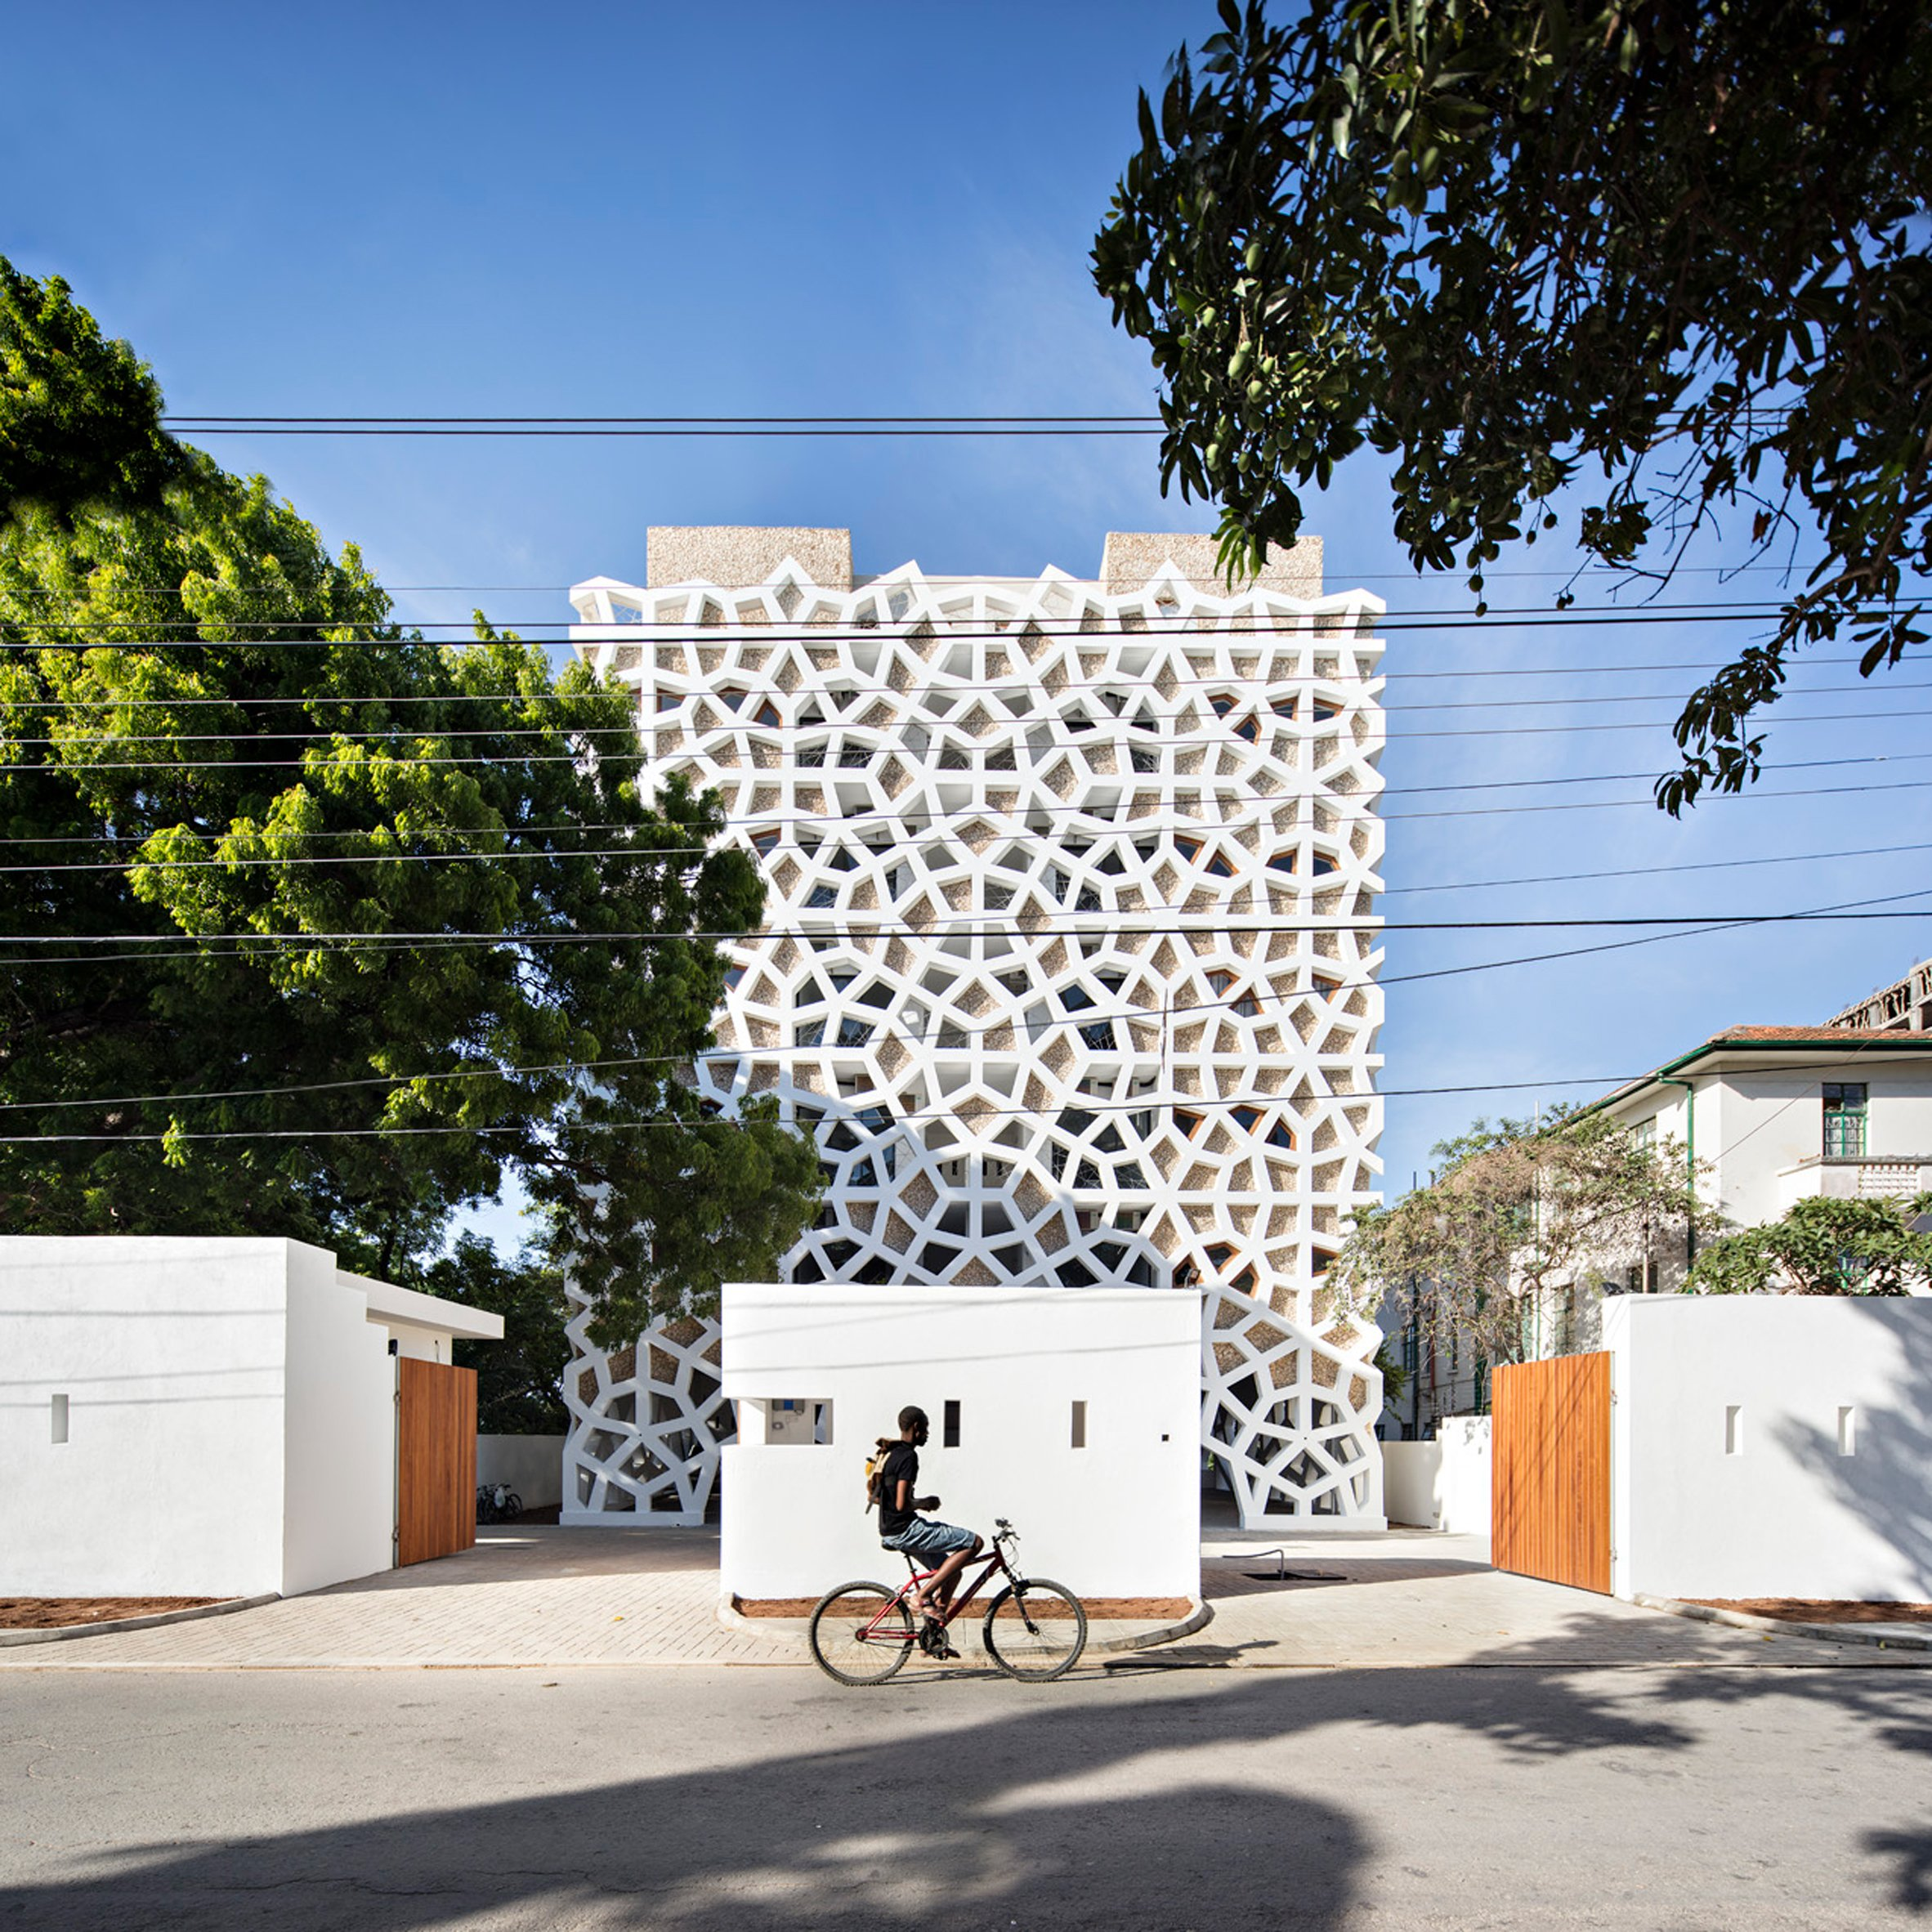 Lattice design and architecture | Dezeen